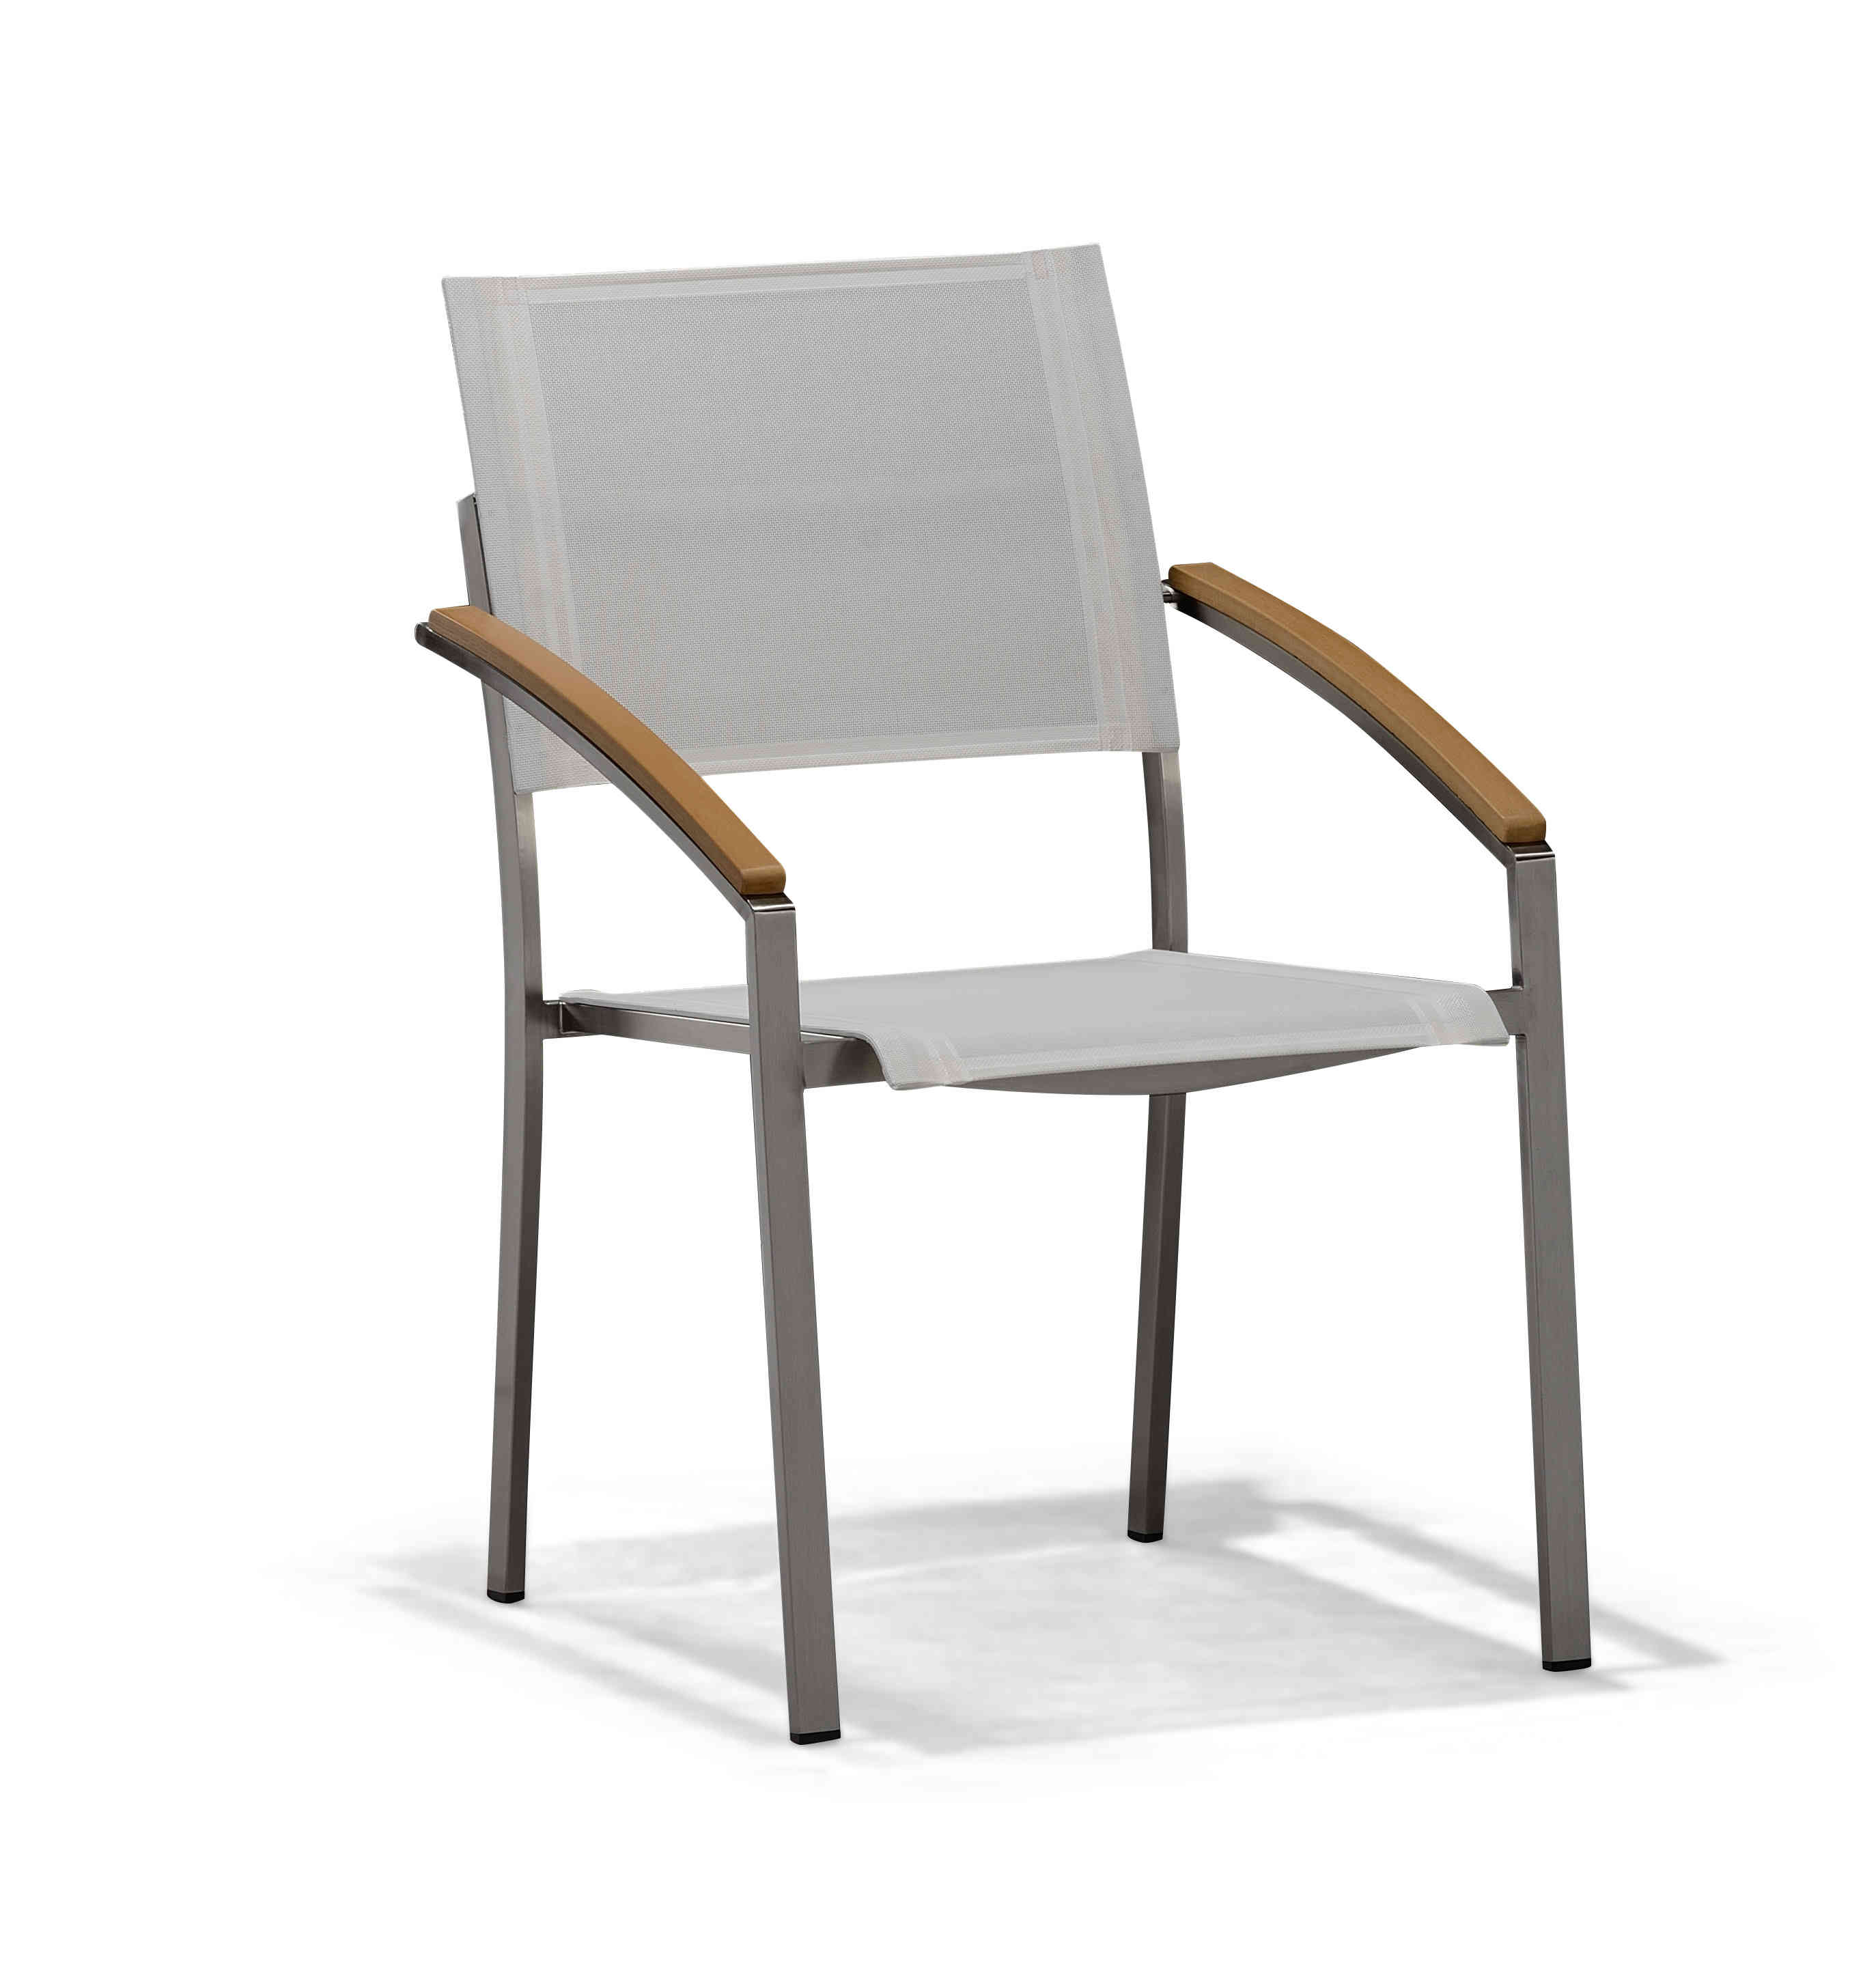 Metal garden dining furniture dining chair (Y112BF)